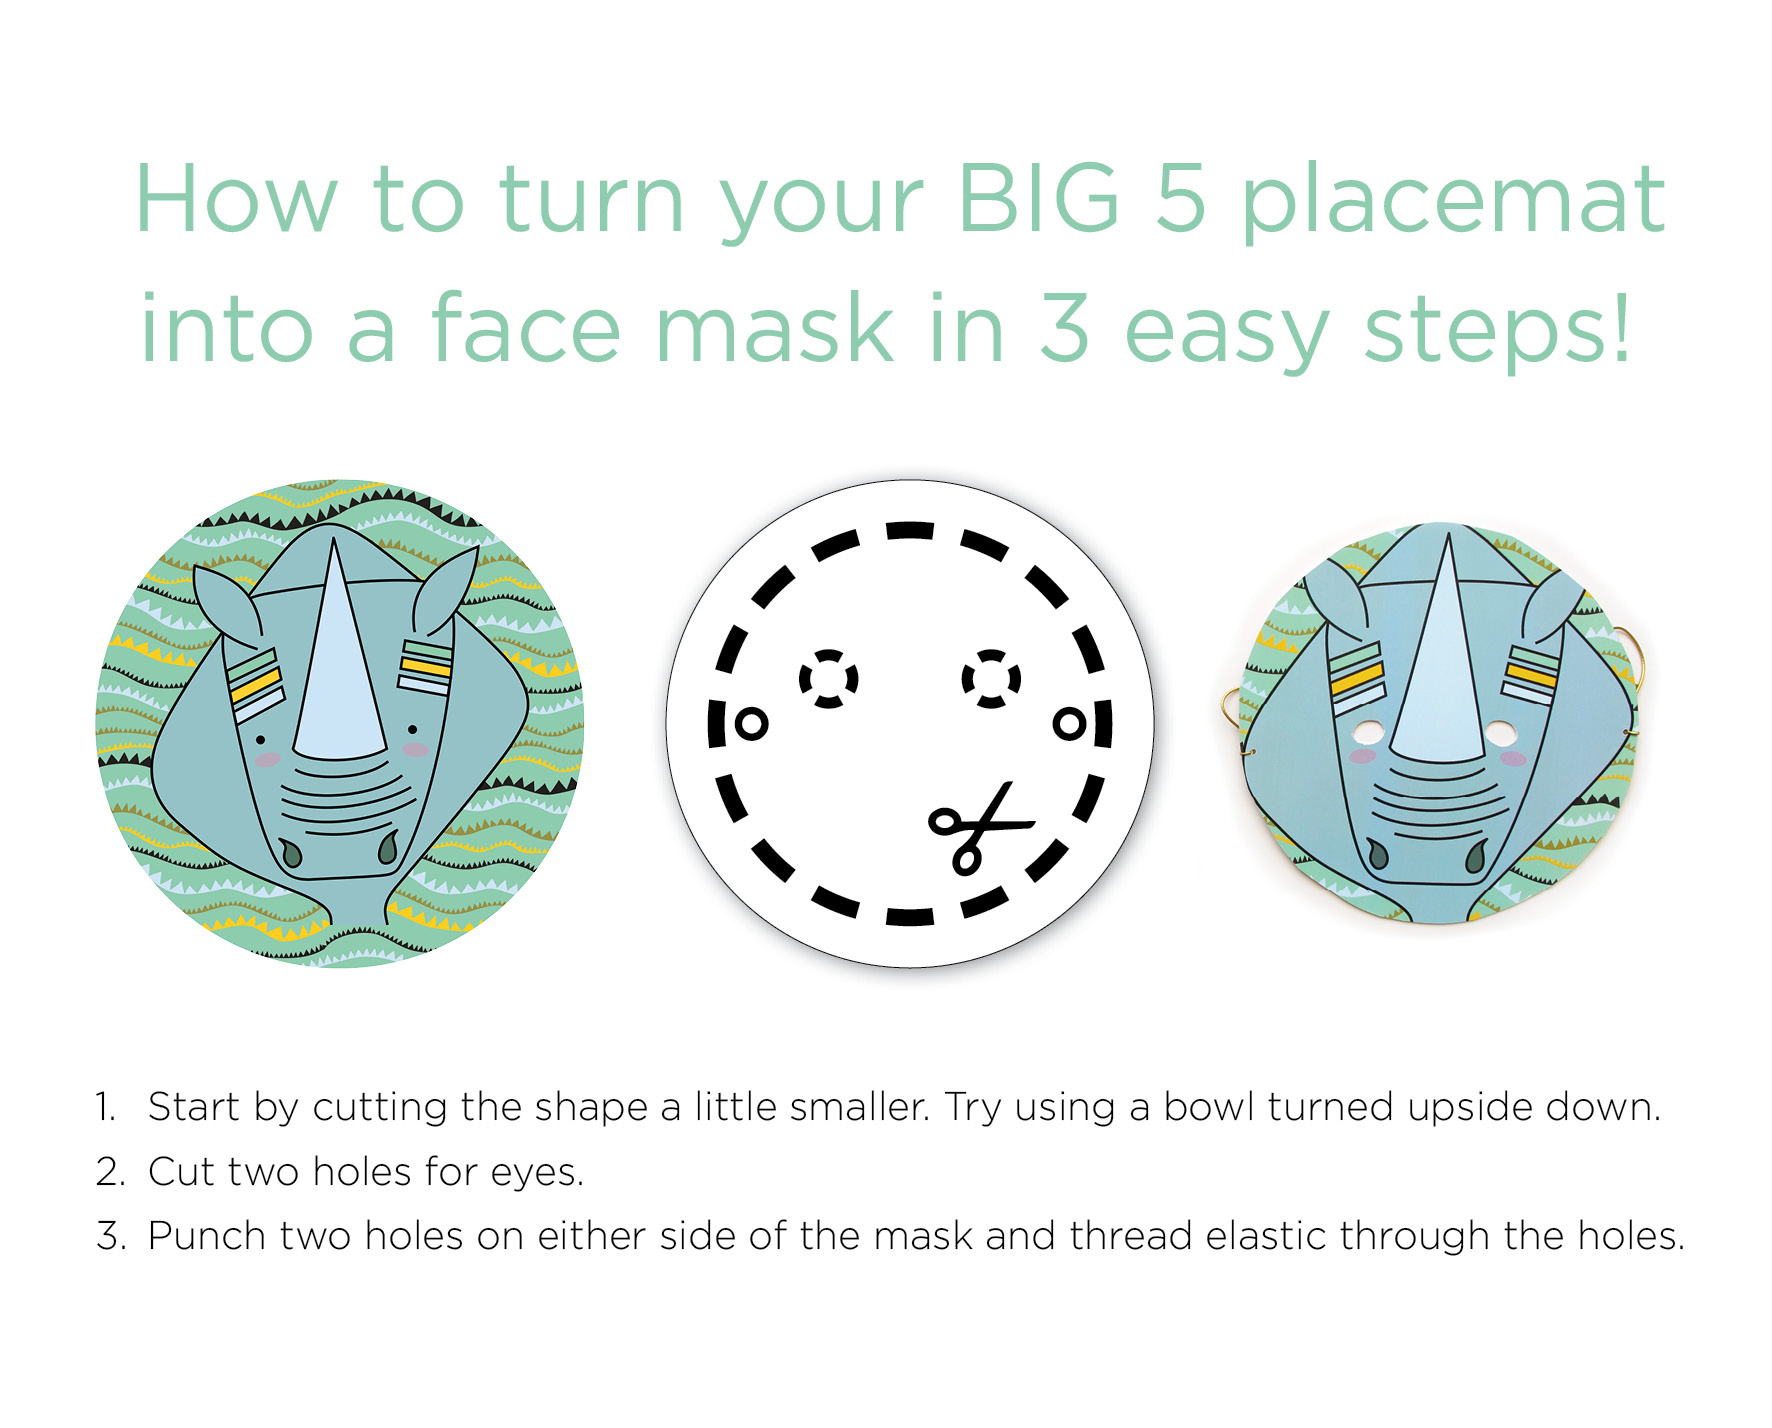 Big5_Placemats_Instructions_Rhino